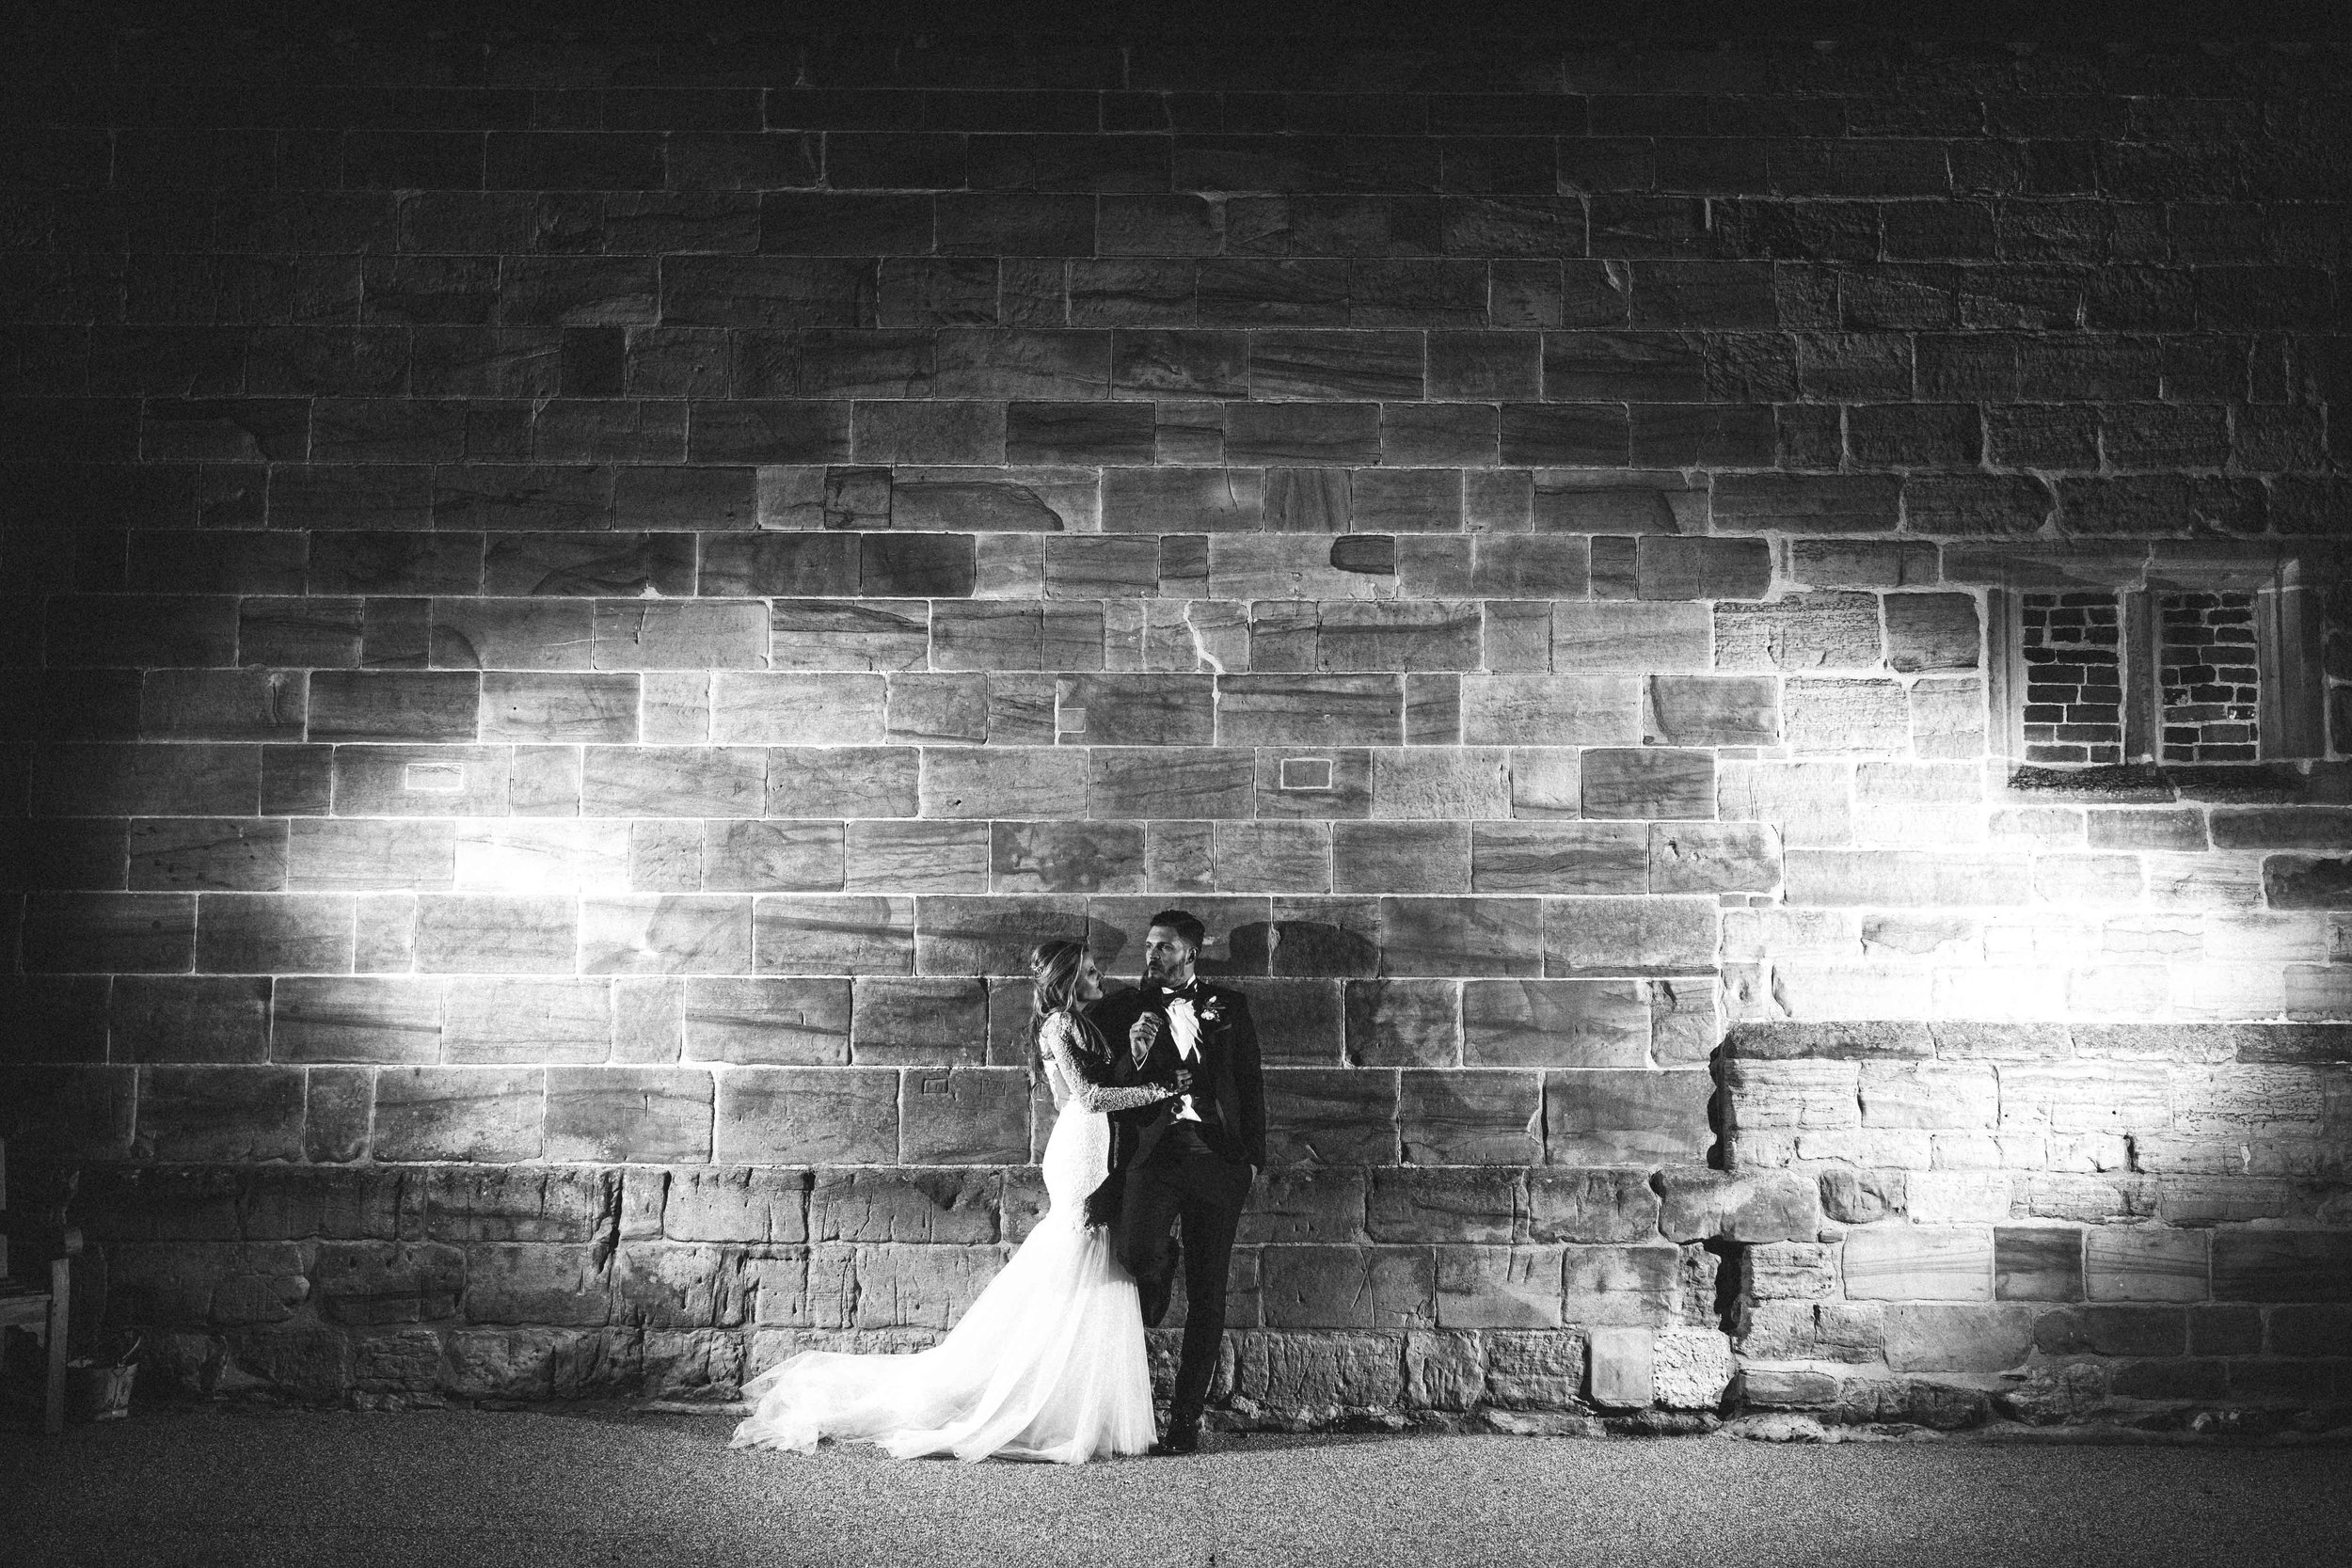 The bride and groom at Hendall Manor Barns